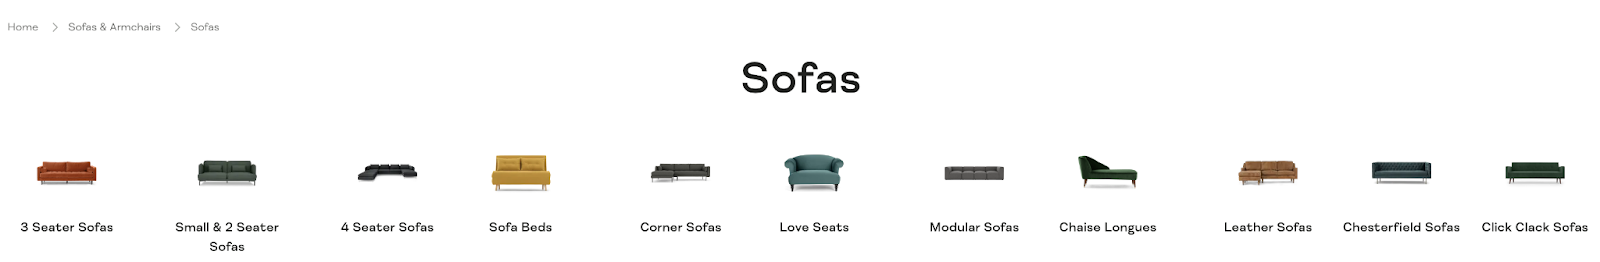 subcategory linking example on a website with multiple different sofa categories